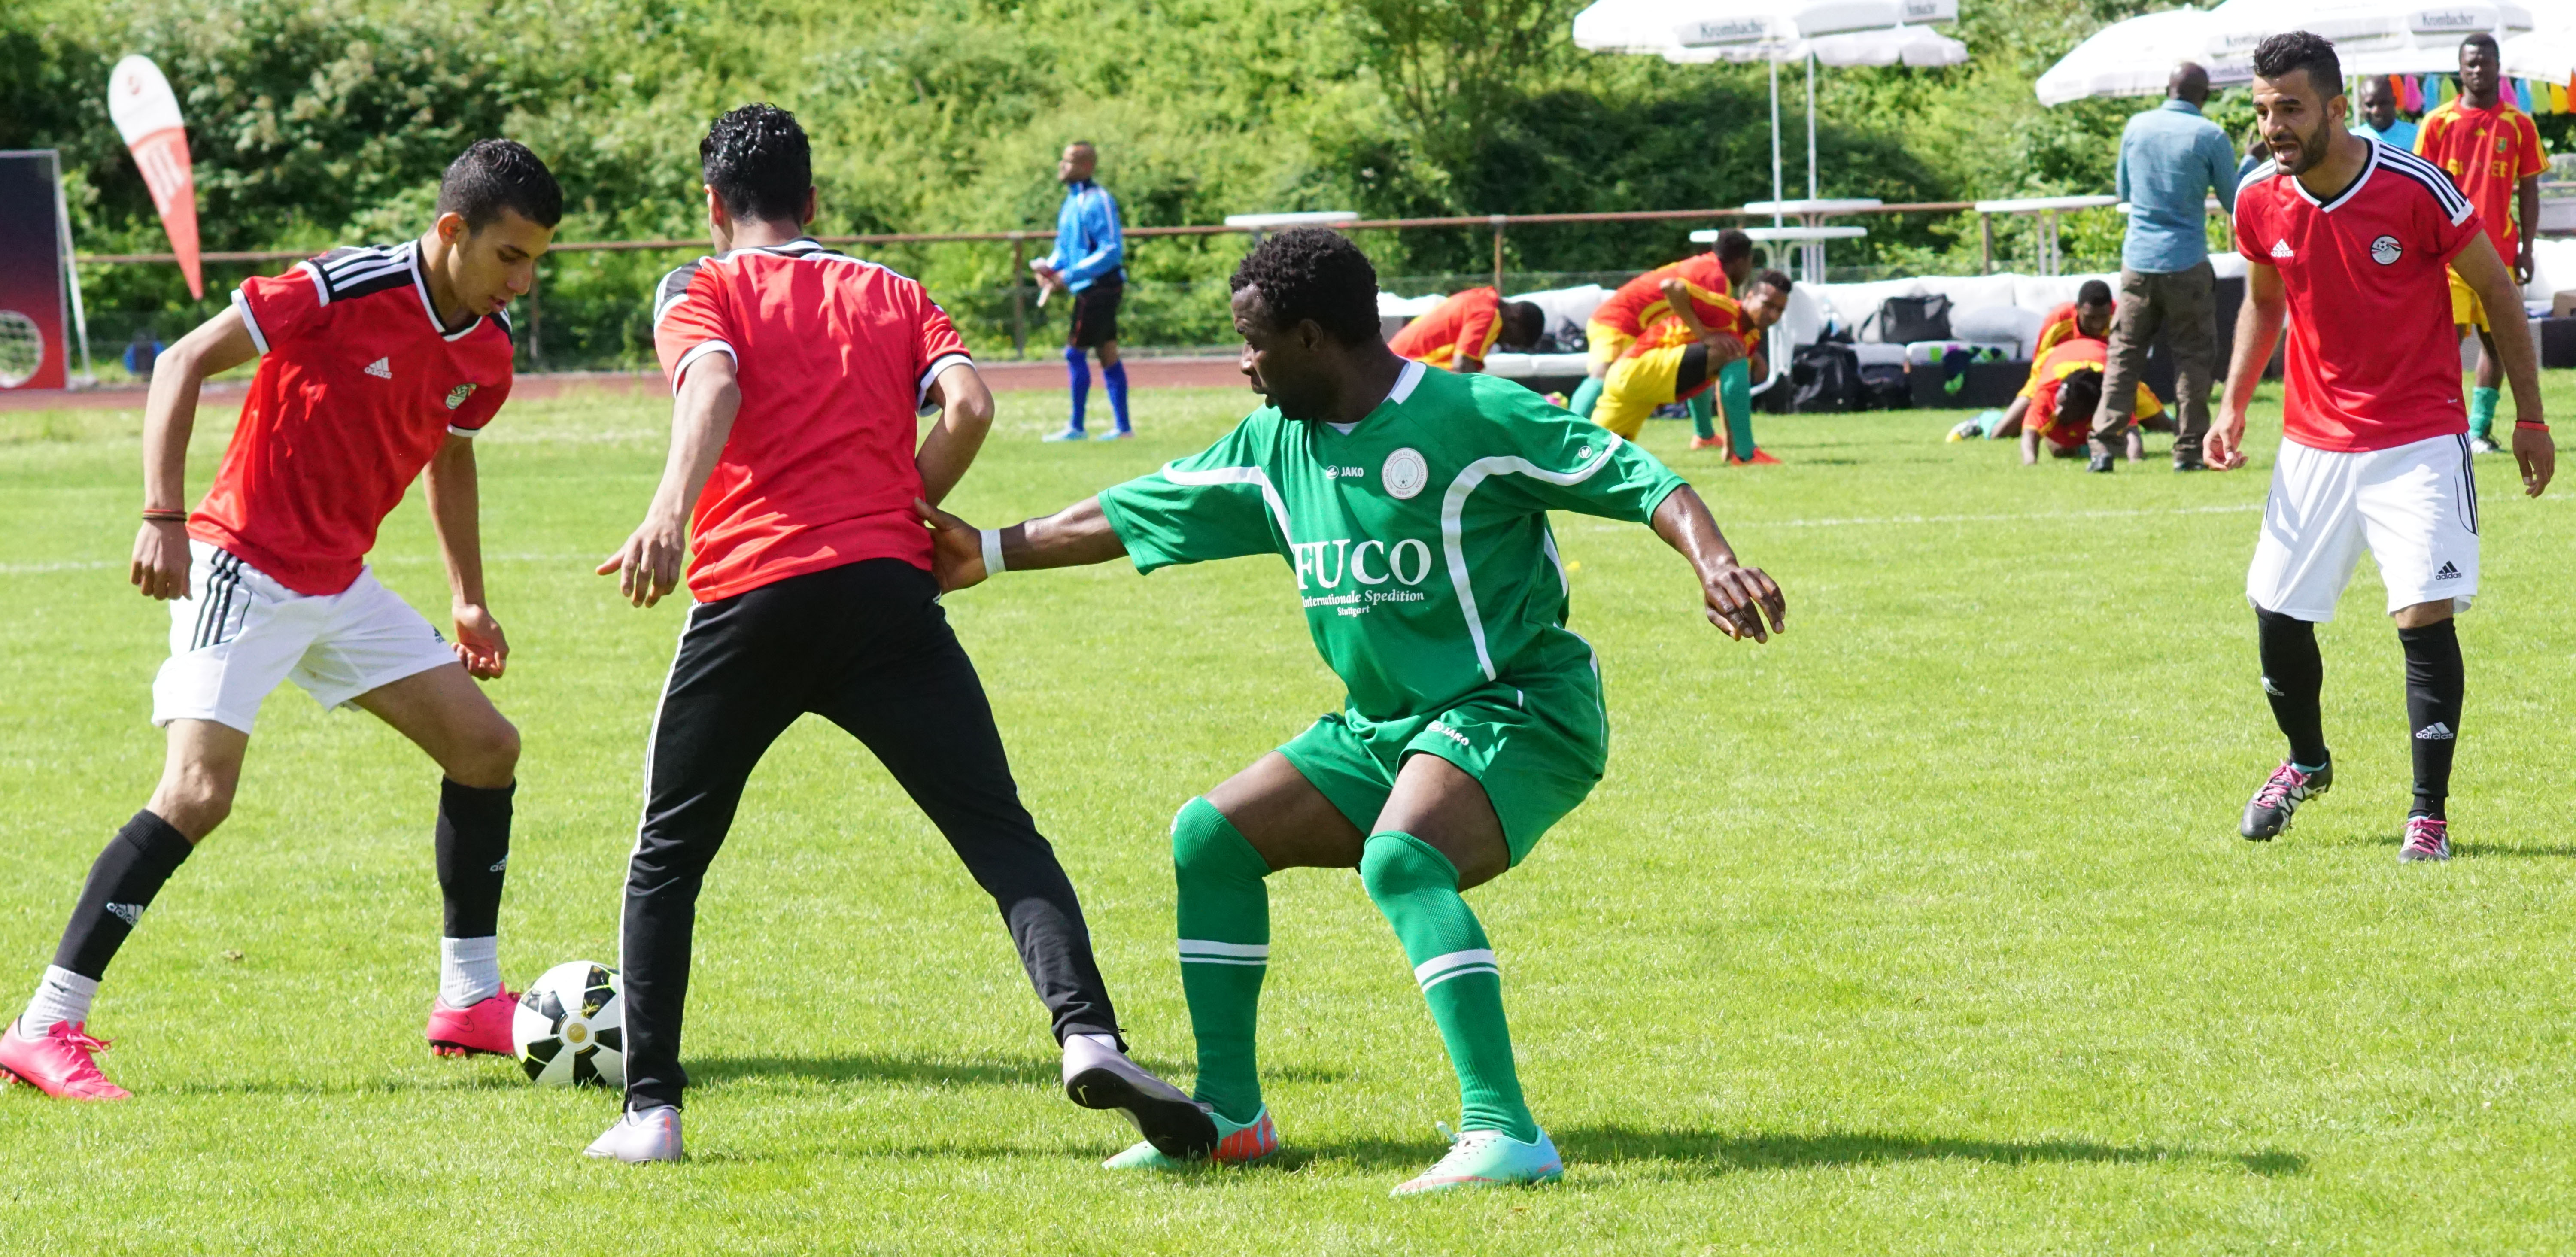 Team Morocco and Team Nigeria in action │ © Larry Bello/TAC